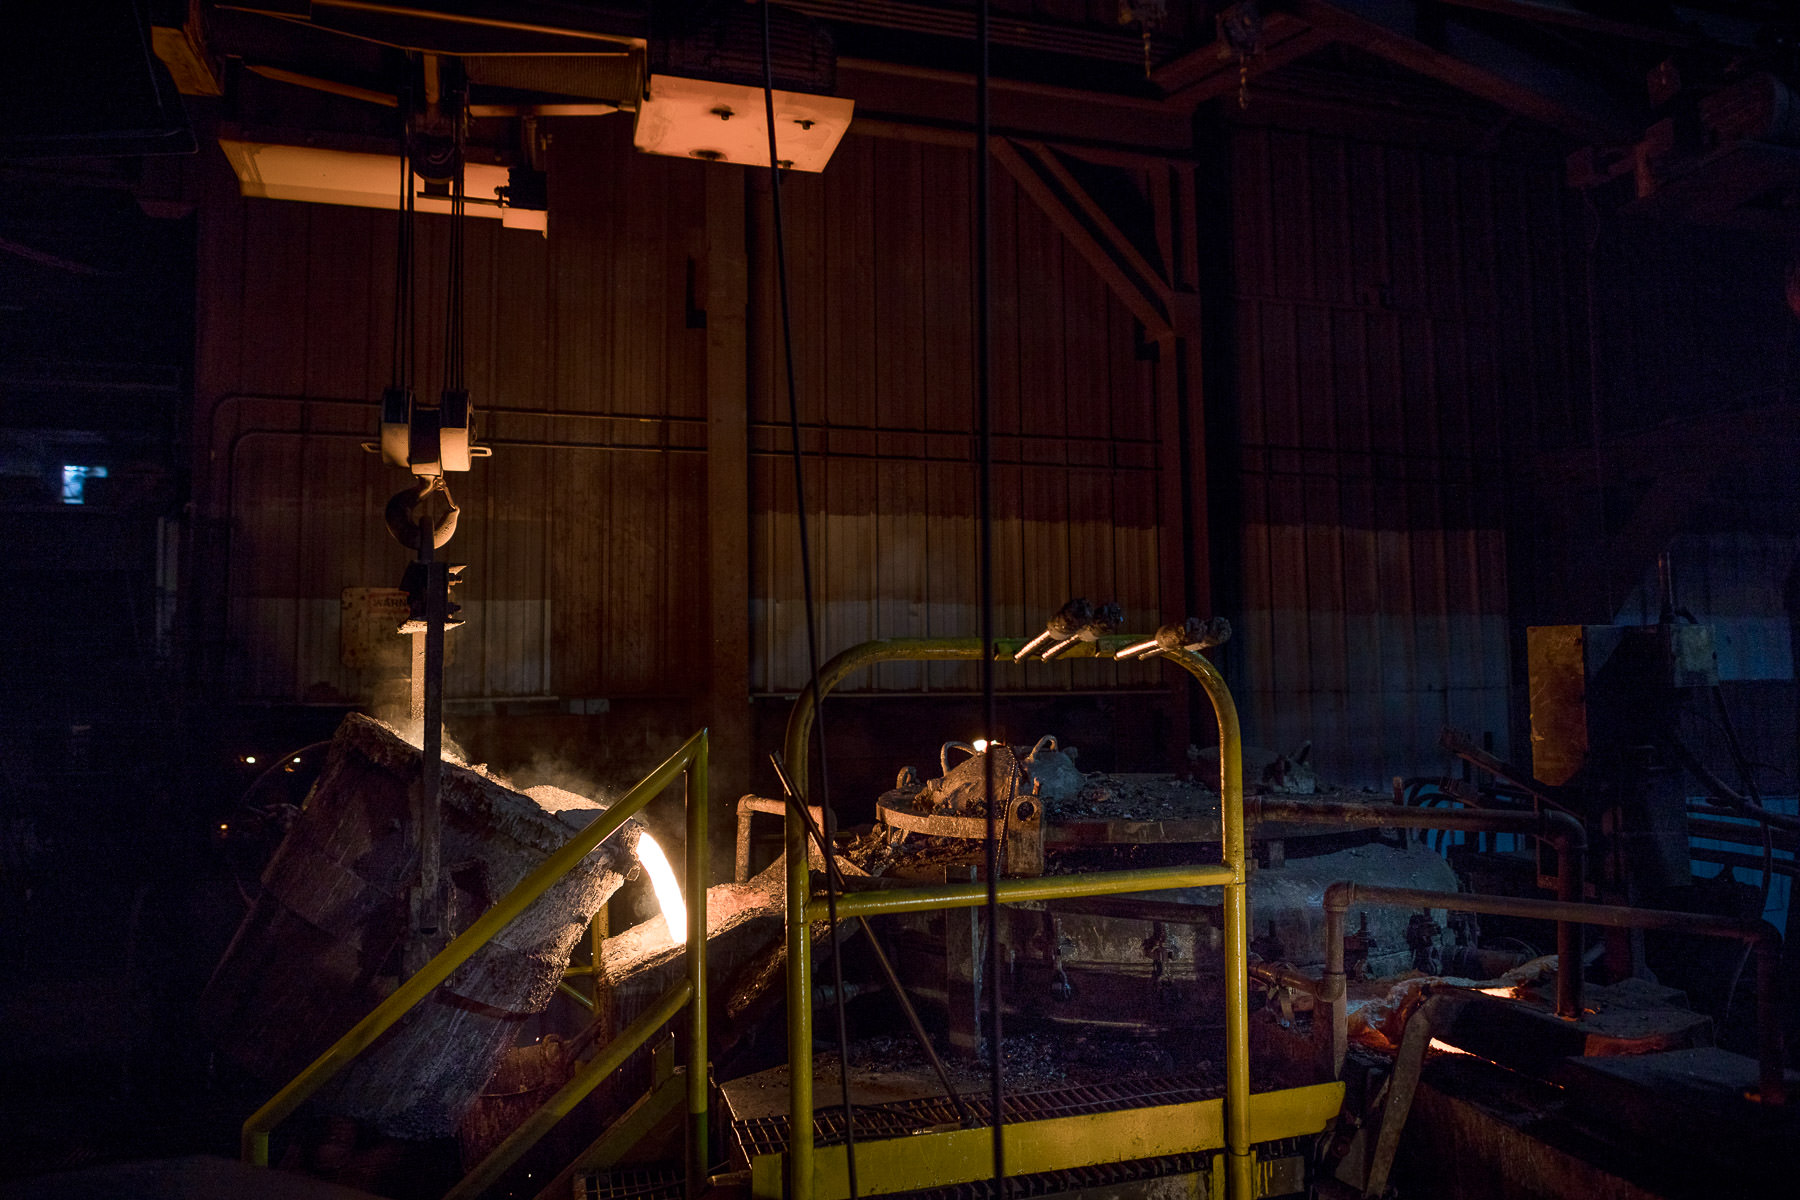 A photo of the iron pouring process at Vermont Castings in Randolph Vermont by professional photographer Stina Booth